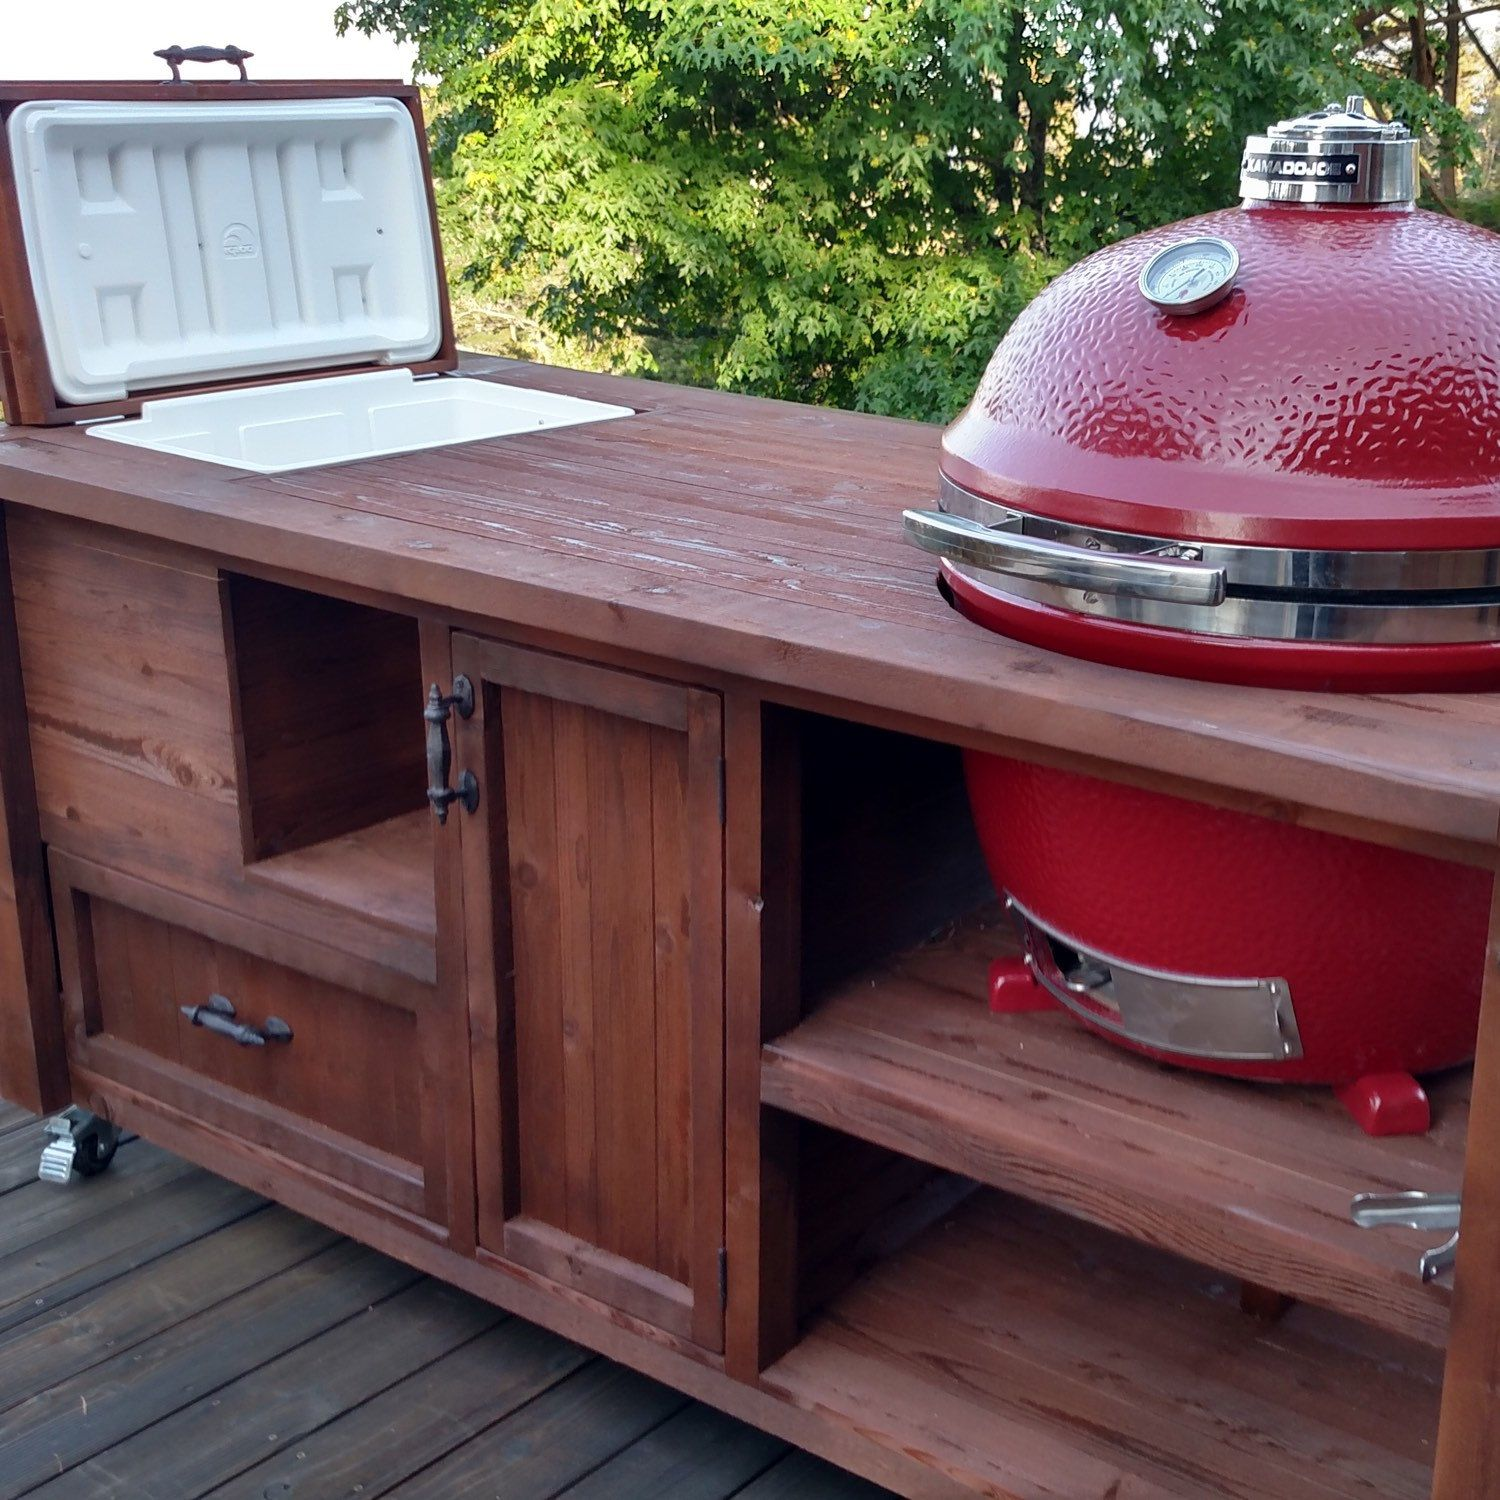 prefab sale barbeque shaped grill l for build cost island of cabinets patio size low outdoor modules stupendous kitchen islands grills outside bbq units your modular cabinet full own kits